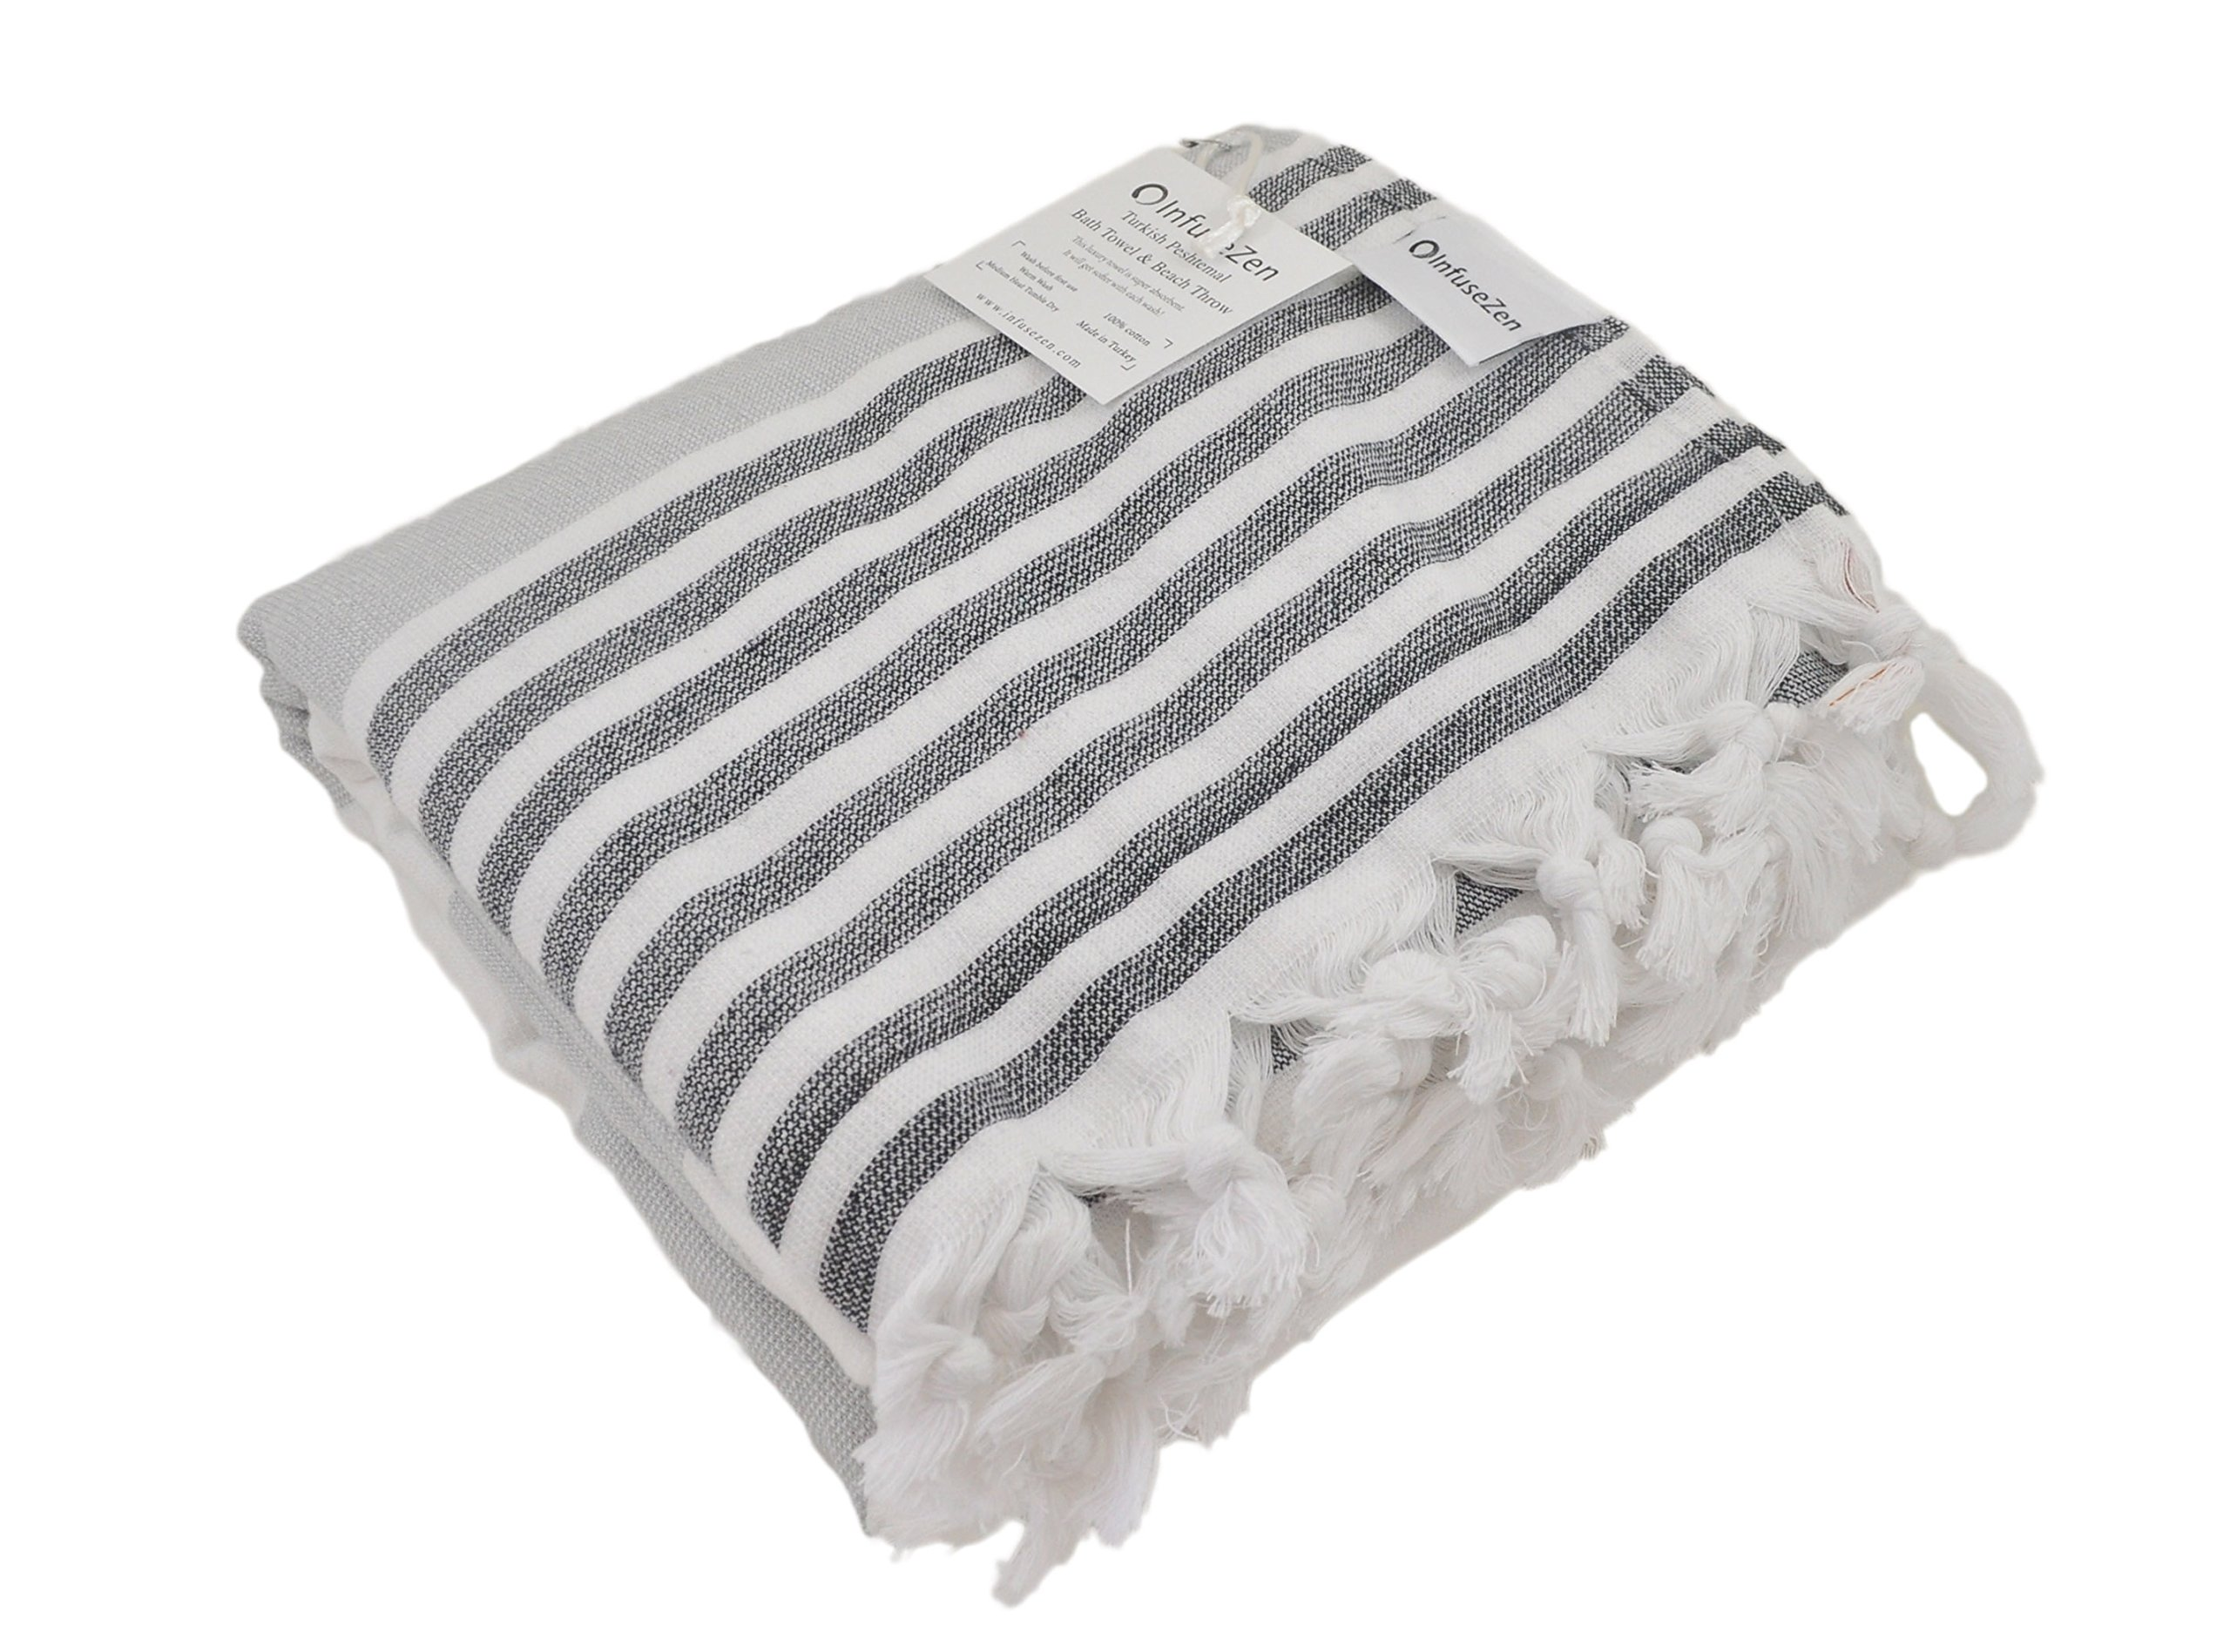 InfuseZen Oversized Turkish Towel, Soft Terry Cloth Back, Turkish Bath Towel, Beach Towel, Extra Large Peshtemal Bath Sheet for Plus Size, Nautical Style Thin Hammam Towel, Cotton Fouta (Grey Black) - Soft Turkish towel with a terry cloth backing - thinner and more lightweight than a typical terry towel! 100% cotton Turkish Towel, also known as a Peshtemal, Hammam or Fouta. Perfect as a bath towel, beach towel or towel for outdoor activities such as hiking, camping and picnics. - bathroom-linens, bathroom, bath-towels - 81BUIzXVtlL -